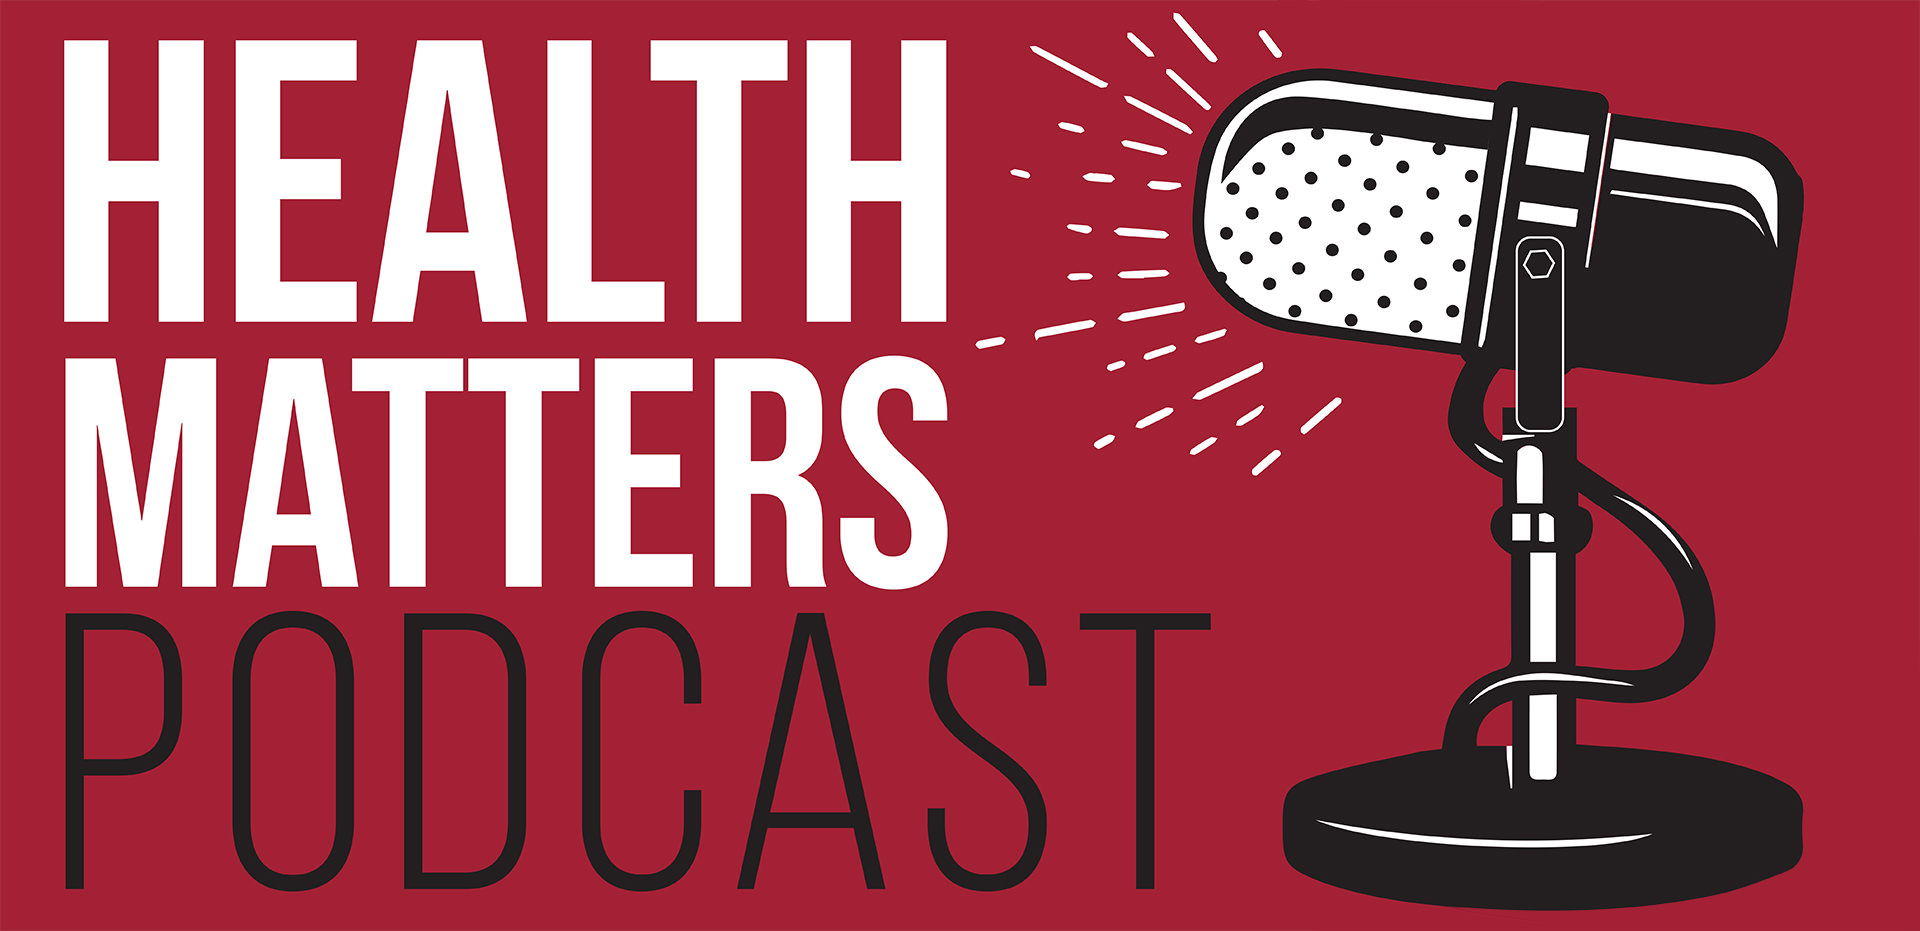 Health Matters Podcast